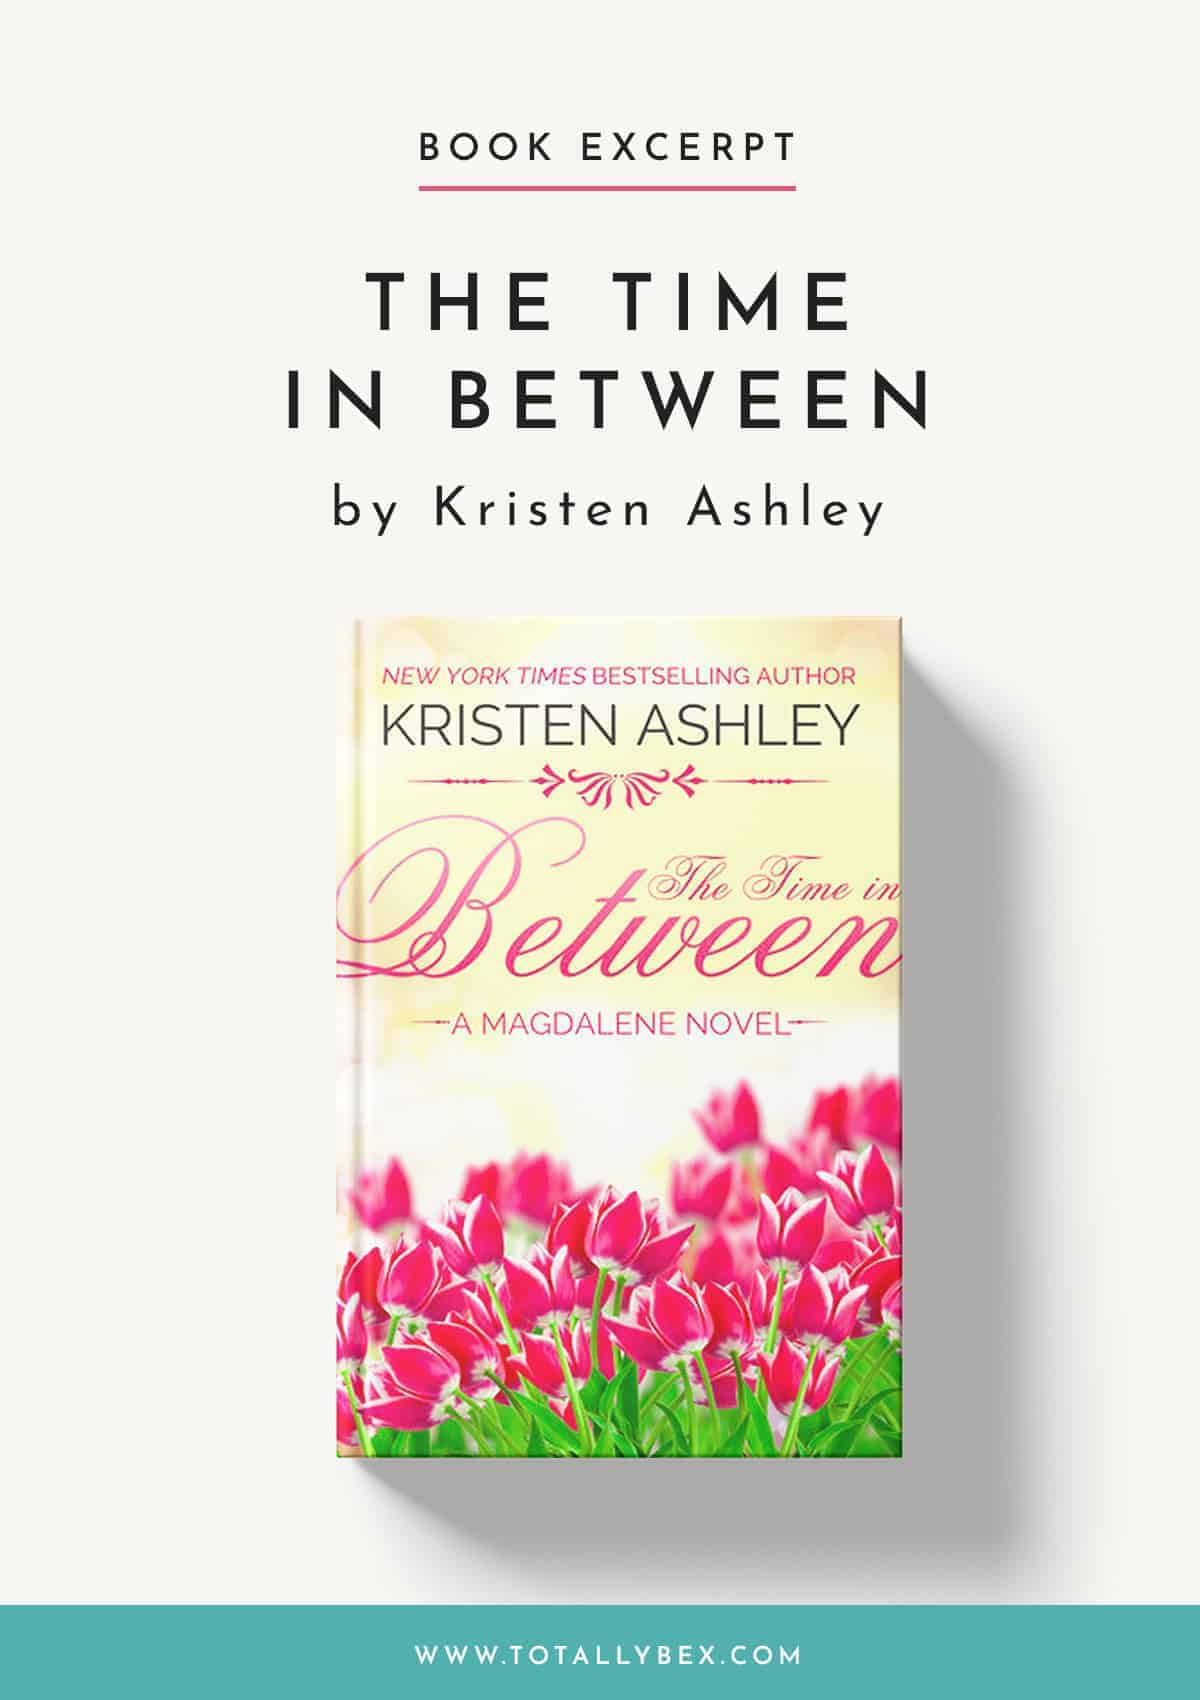 The Time in Between by Kristen Ashley-Book Excerpt